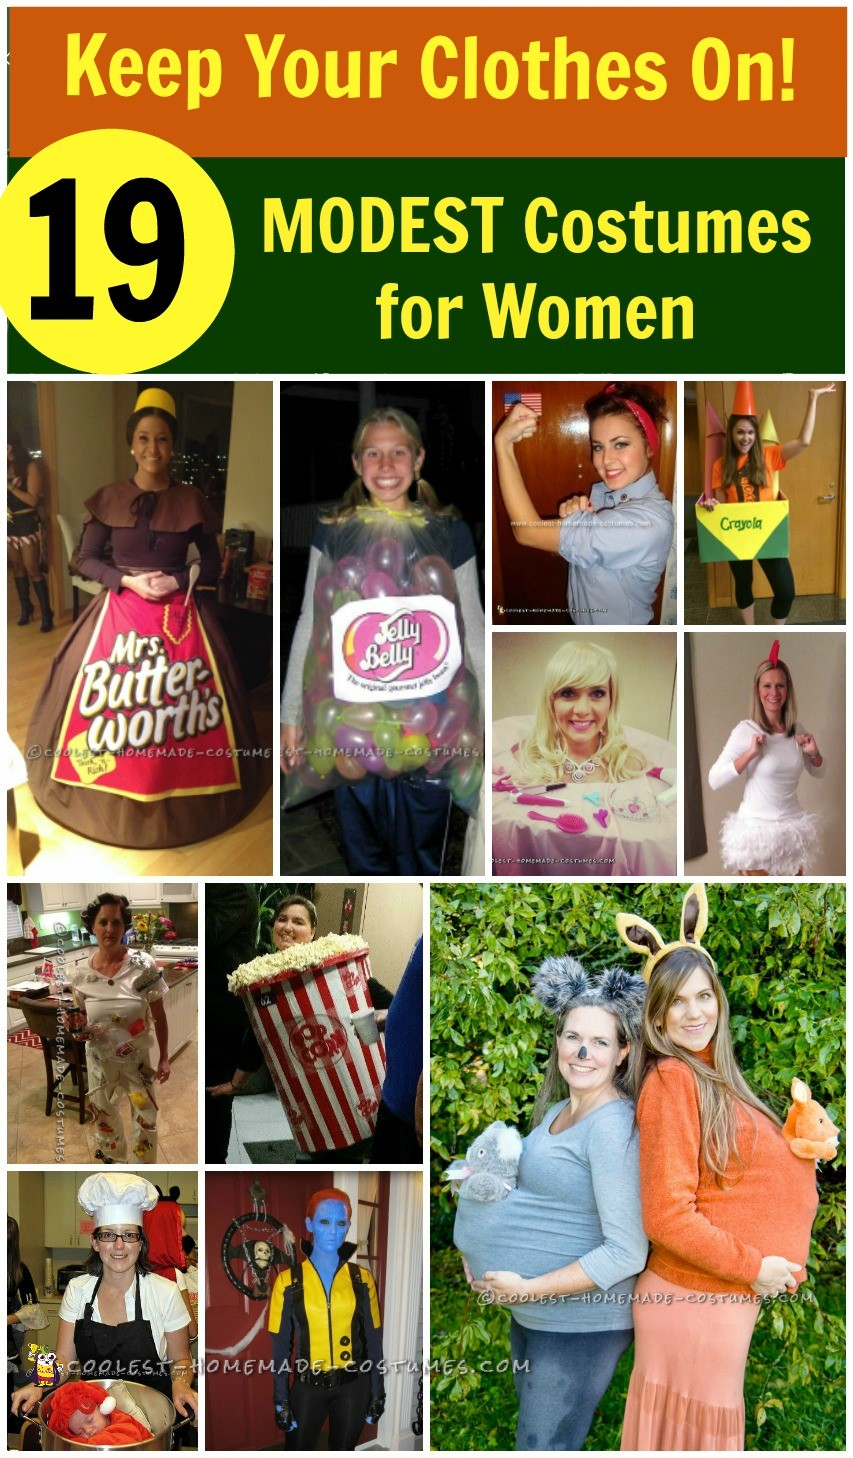 19 Coolest DIY Modest Halloween Costumes for Women and Girls